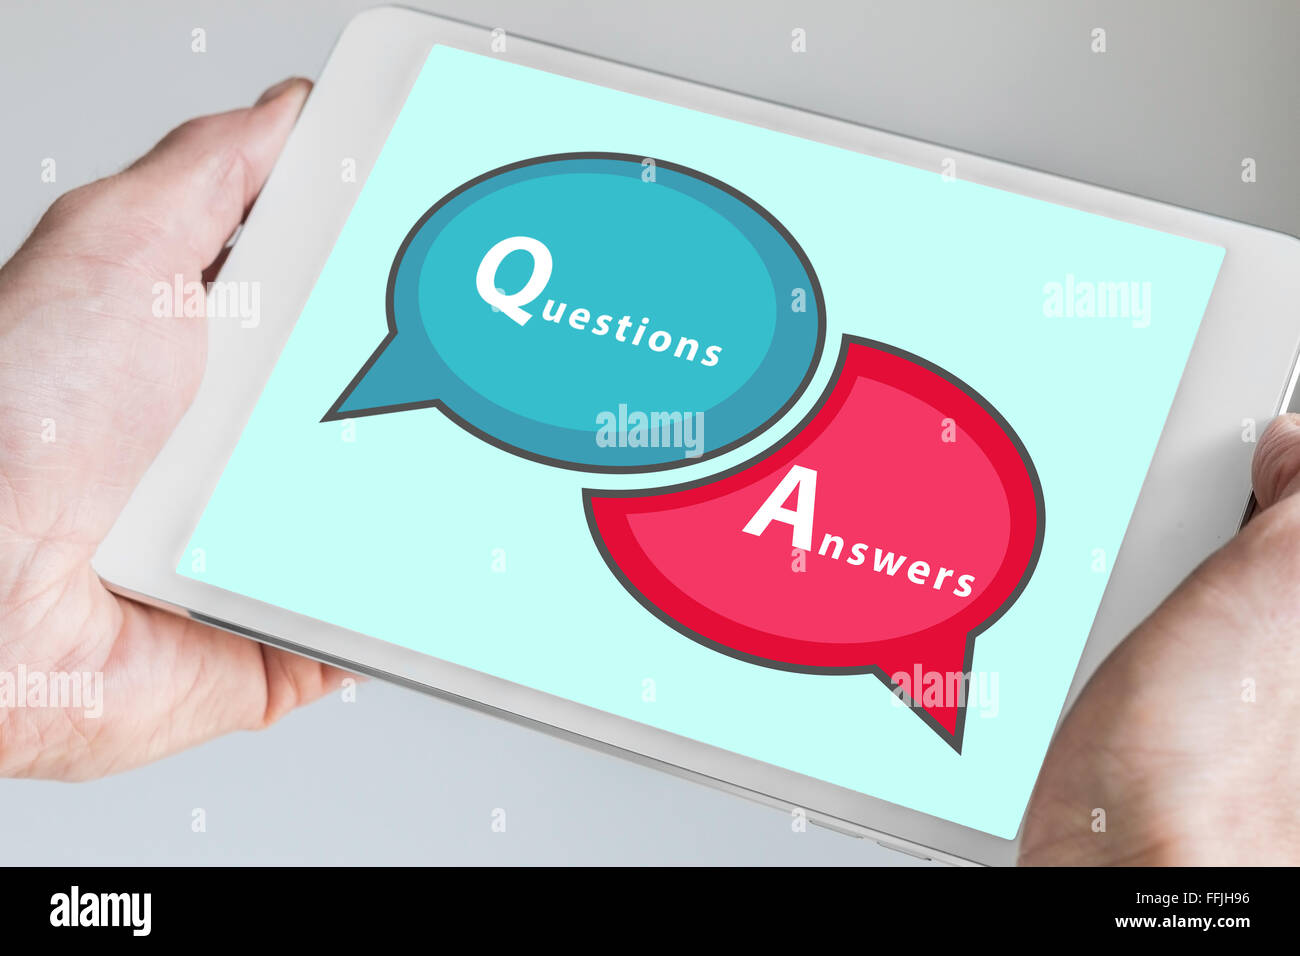 Questions and answers q a session concept with hands holding modern stock photo 95680402 alamy for Aufmerksamkeit englisch